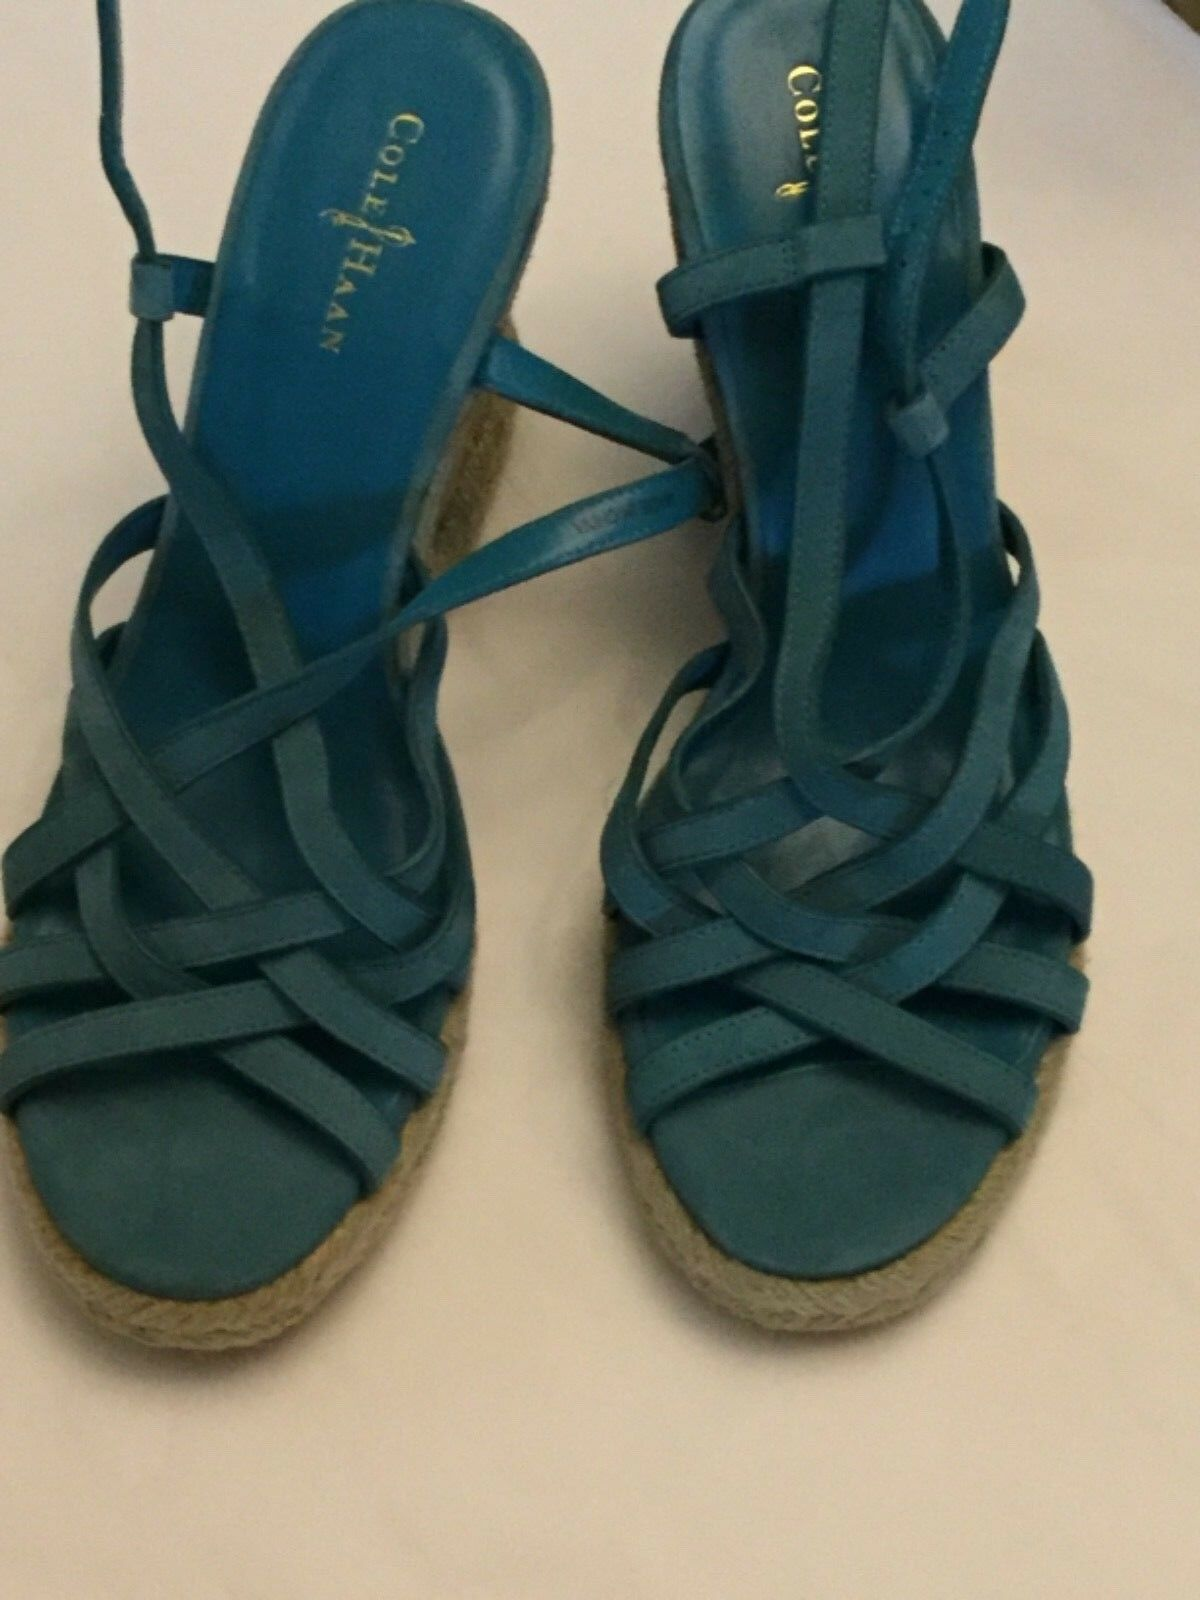 NEW Cole Haan Strappy Leder Wedges 7B w/ Woven Soles - 7B Wedges f4e51f